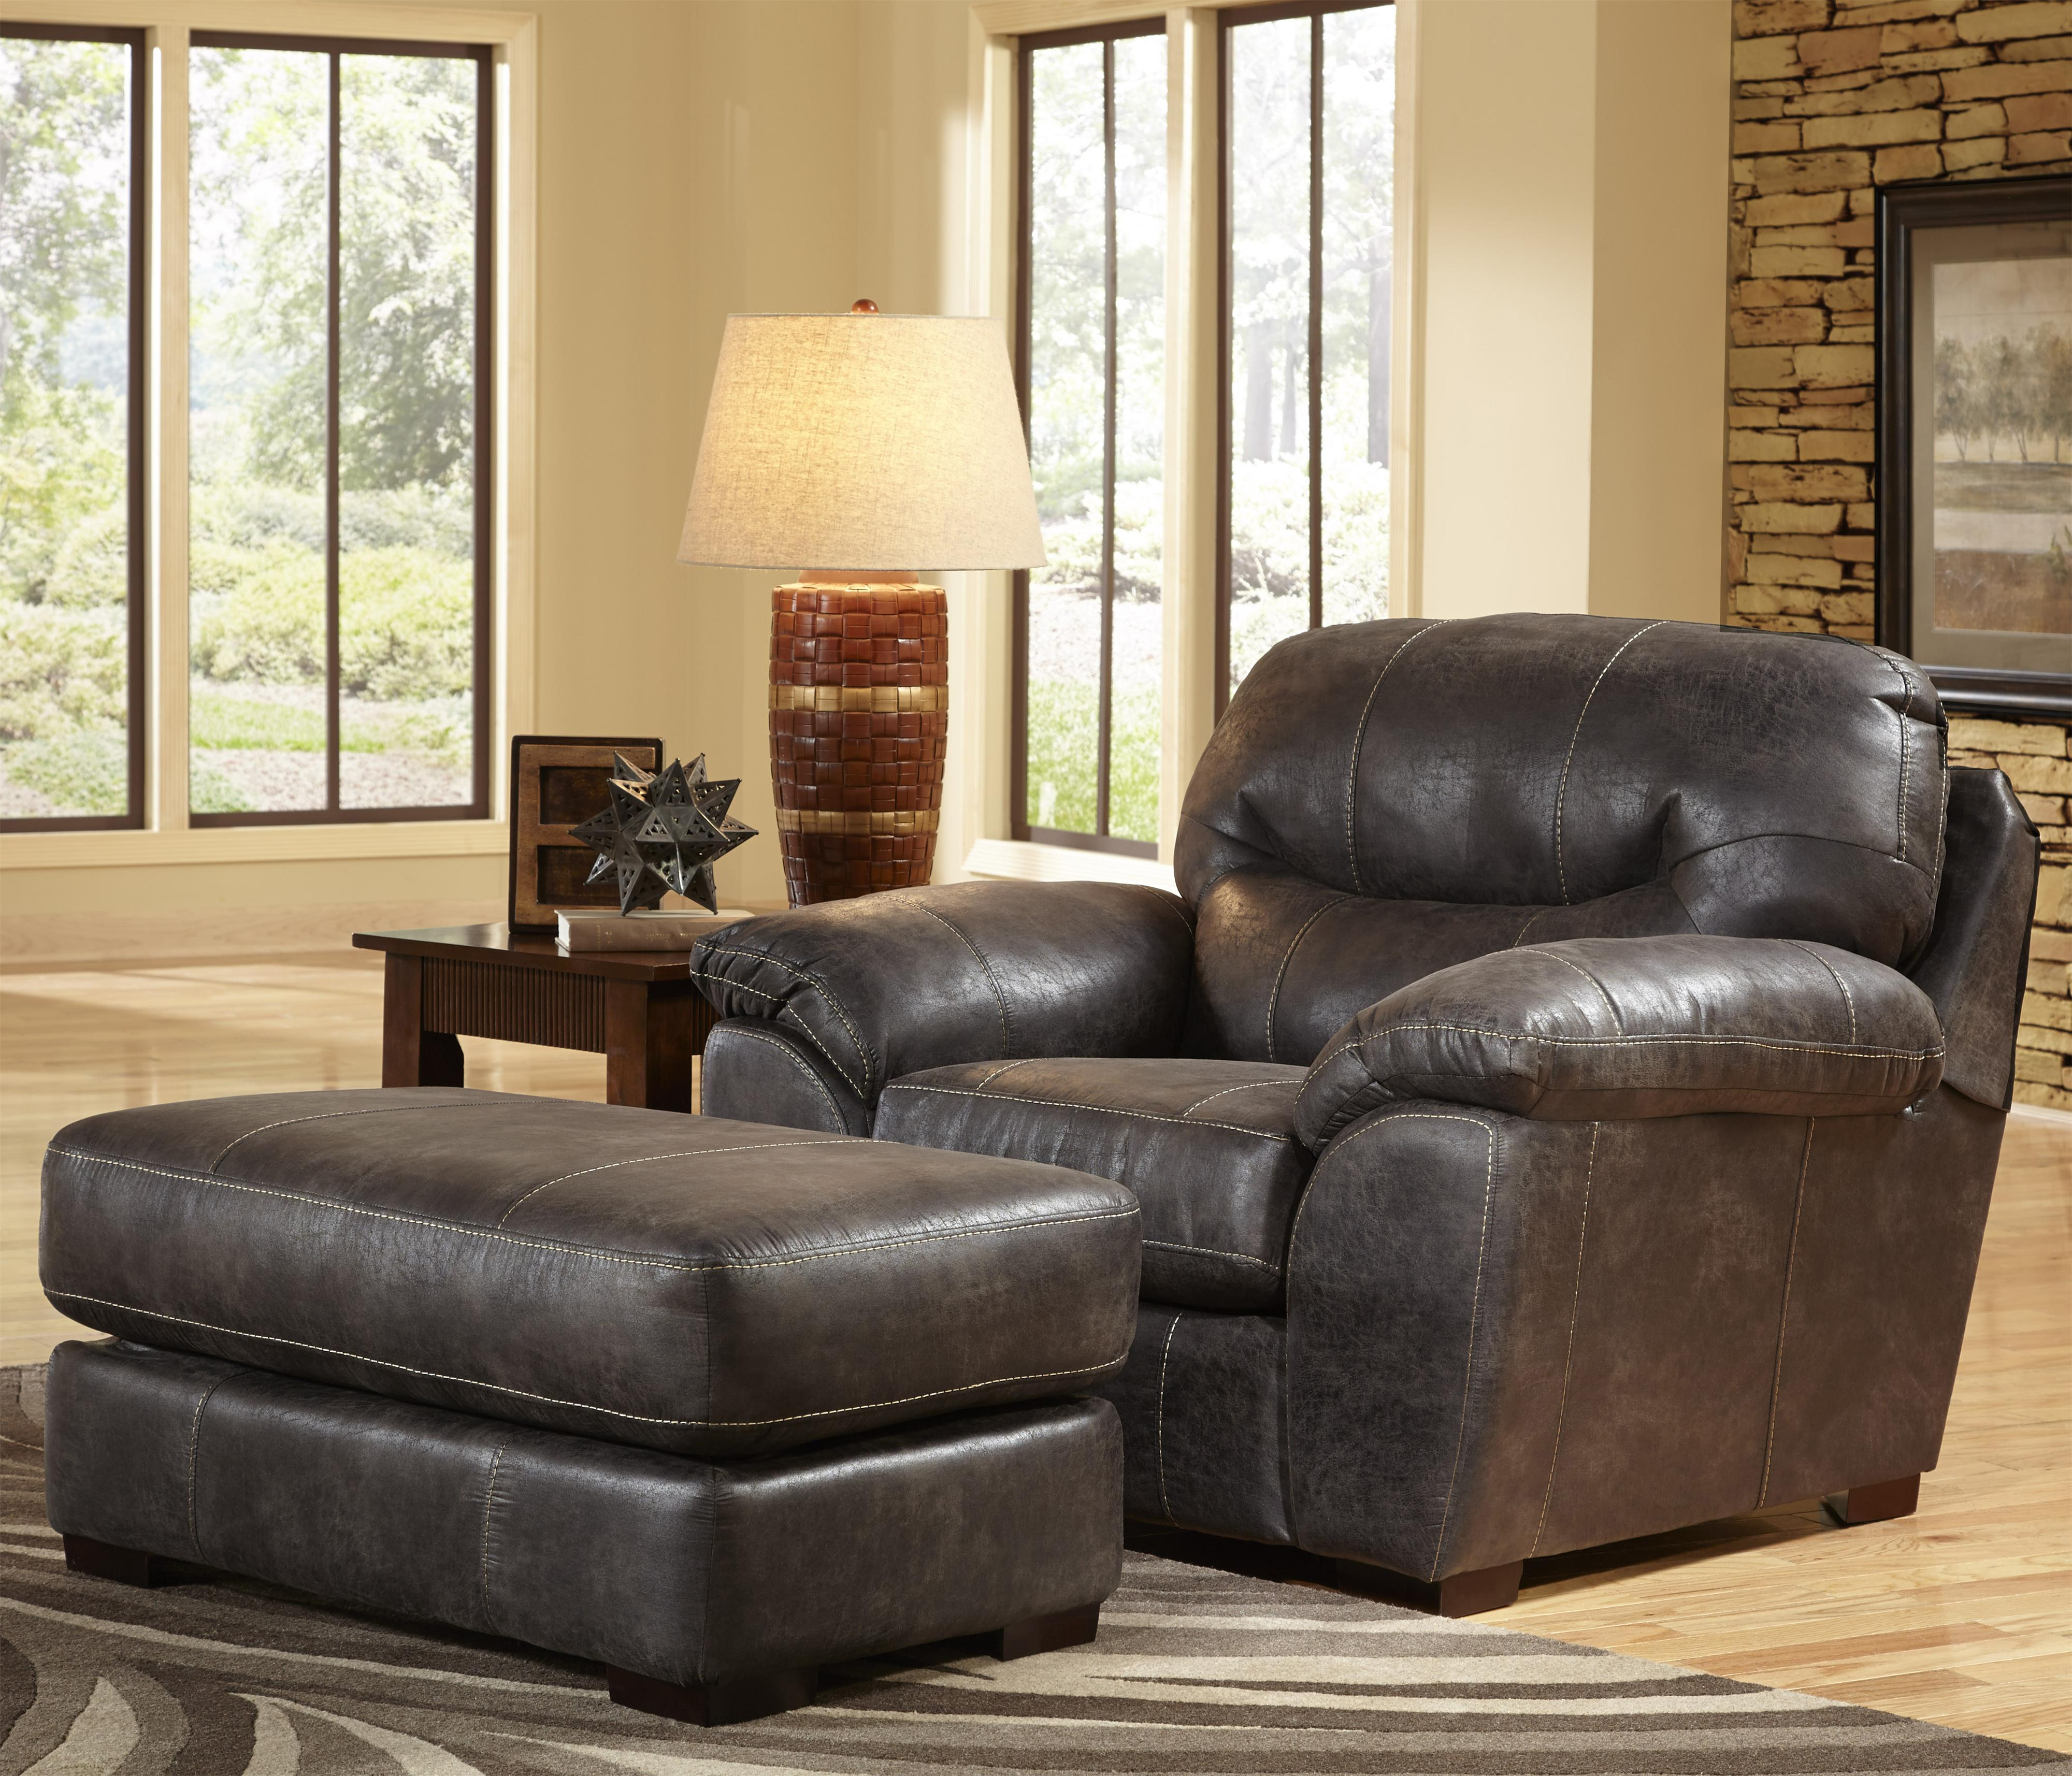 Chair And A Half With Ottoman Chair And A Half And Ottoman Set For Living Rooms And